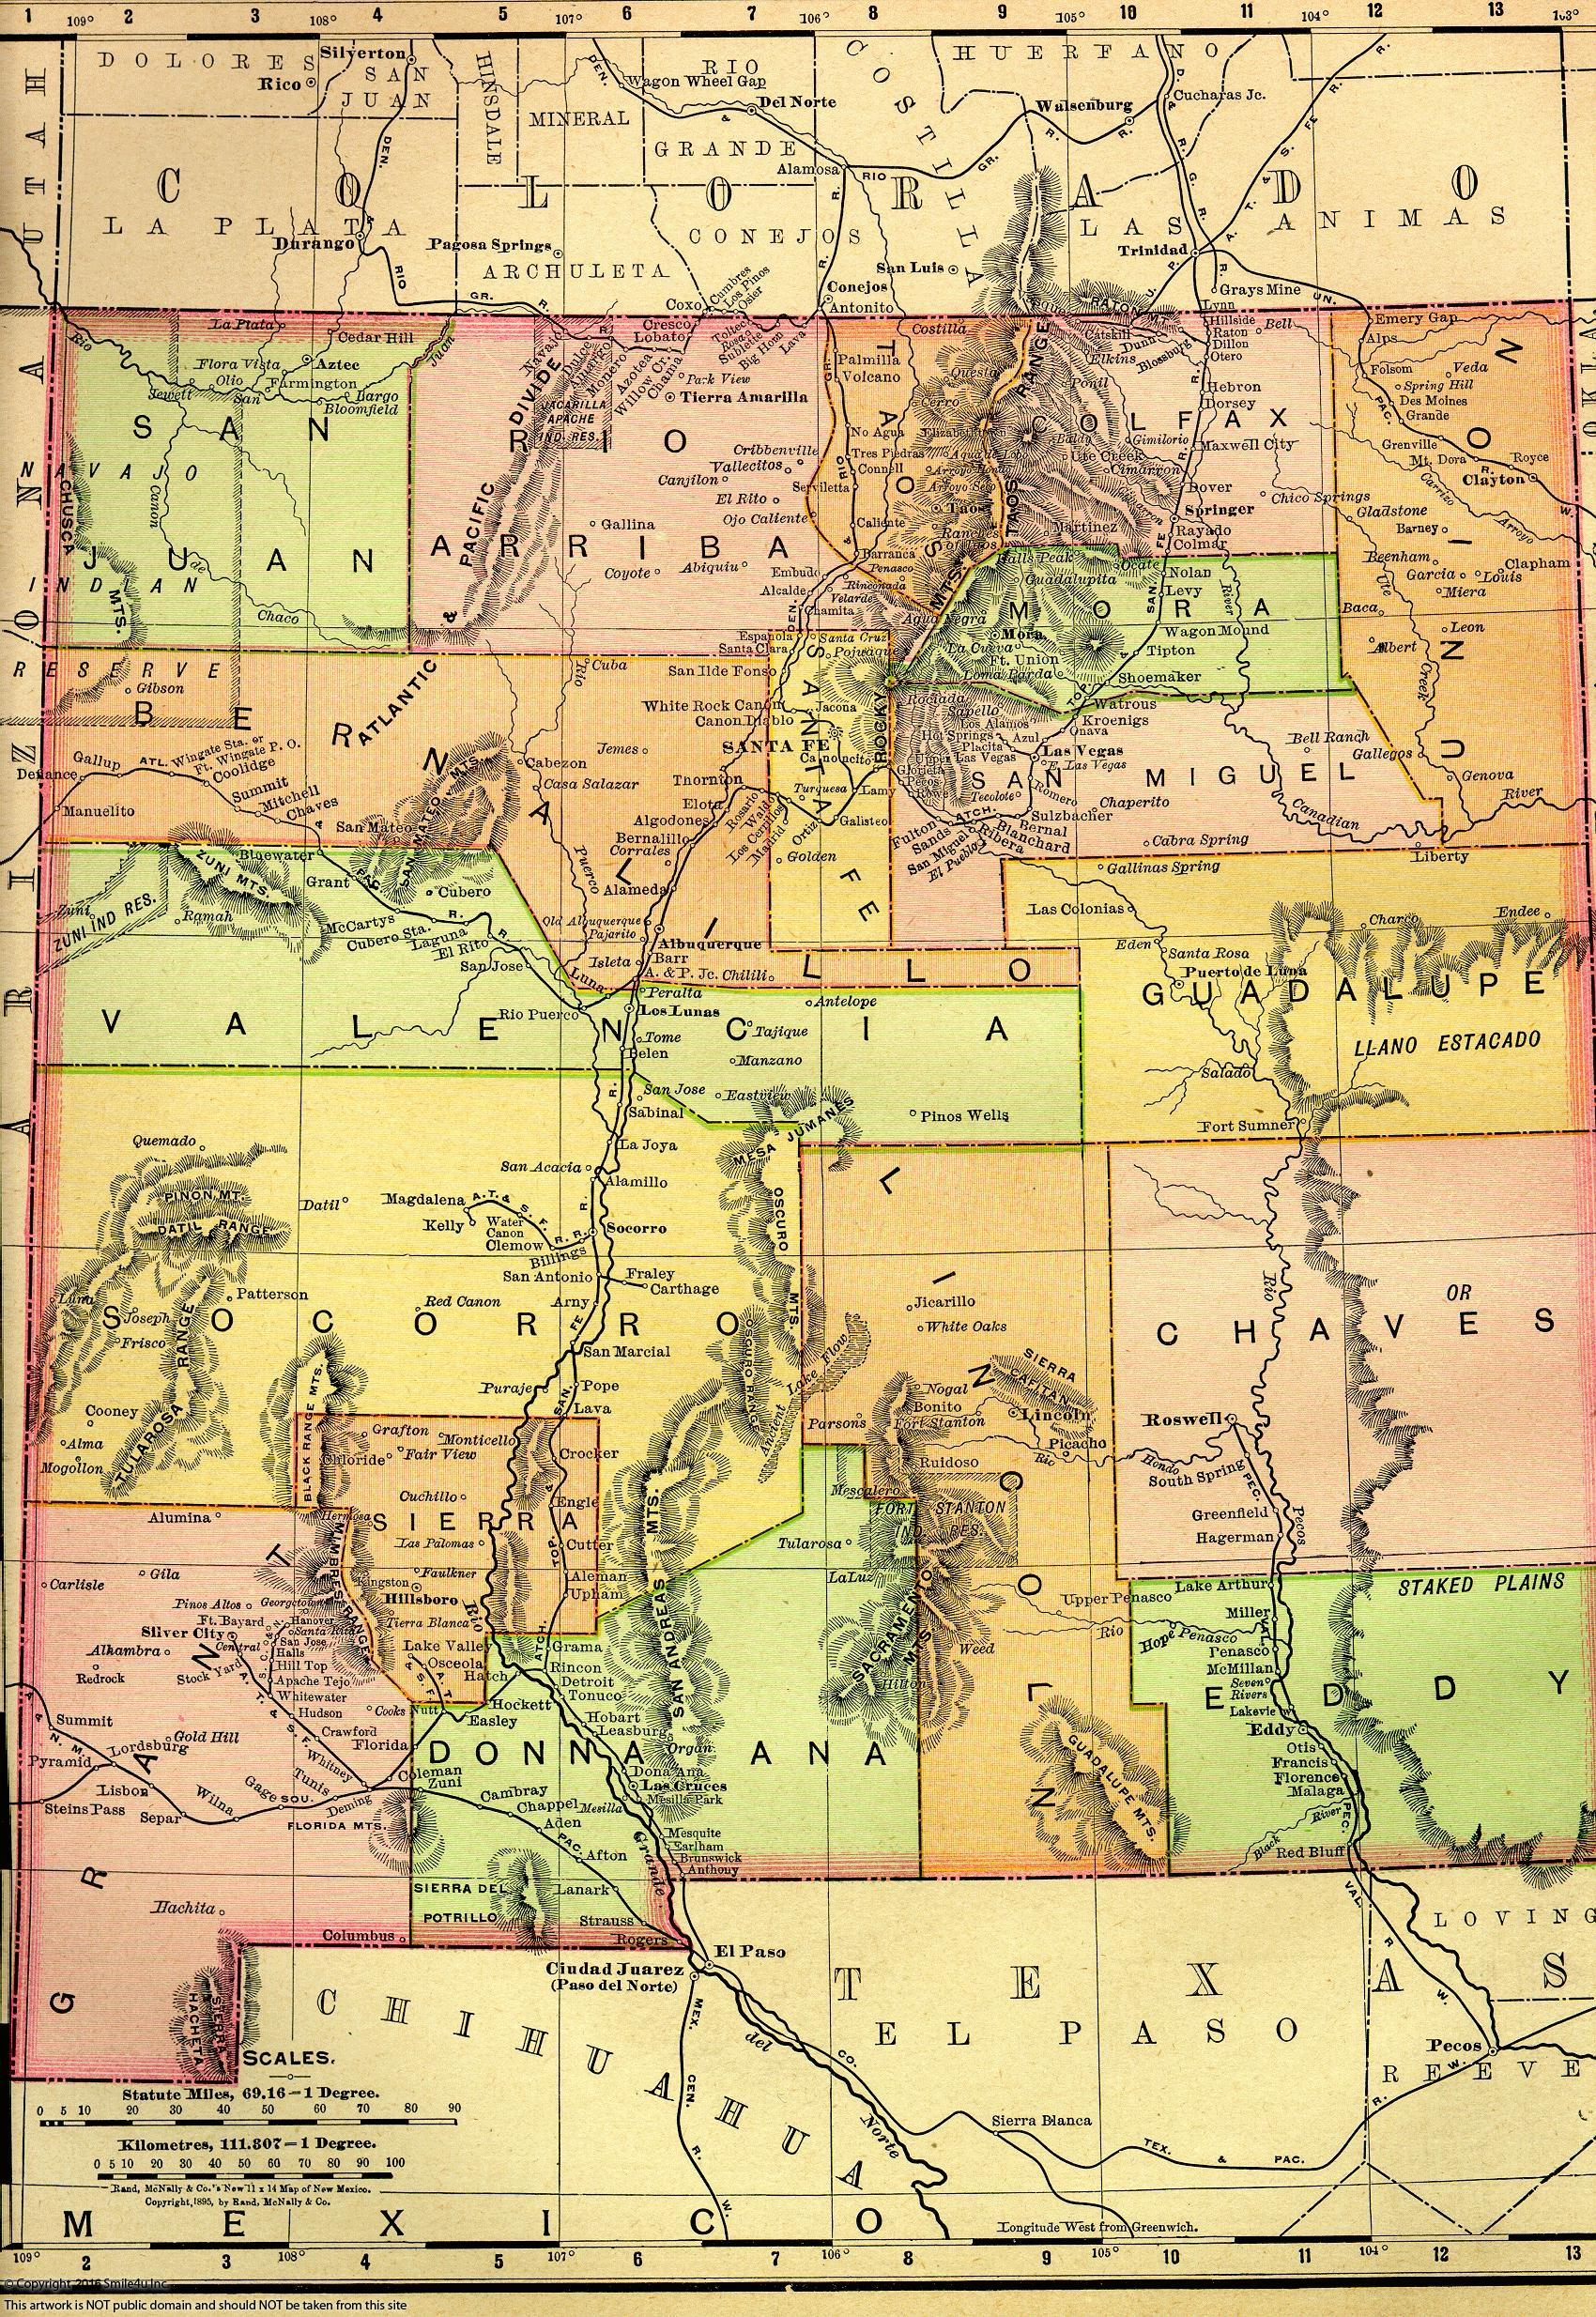 510031_watermarked_New Mexico State Map in 1895.jpg